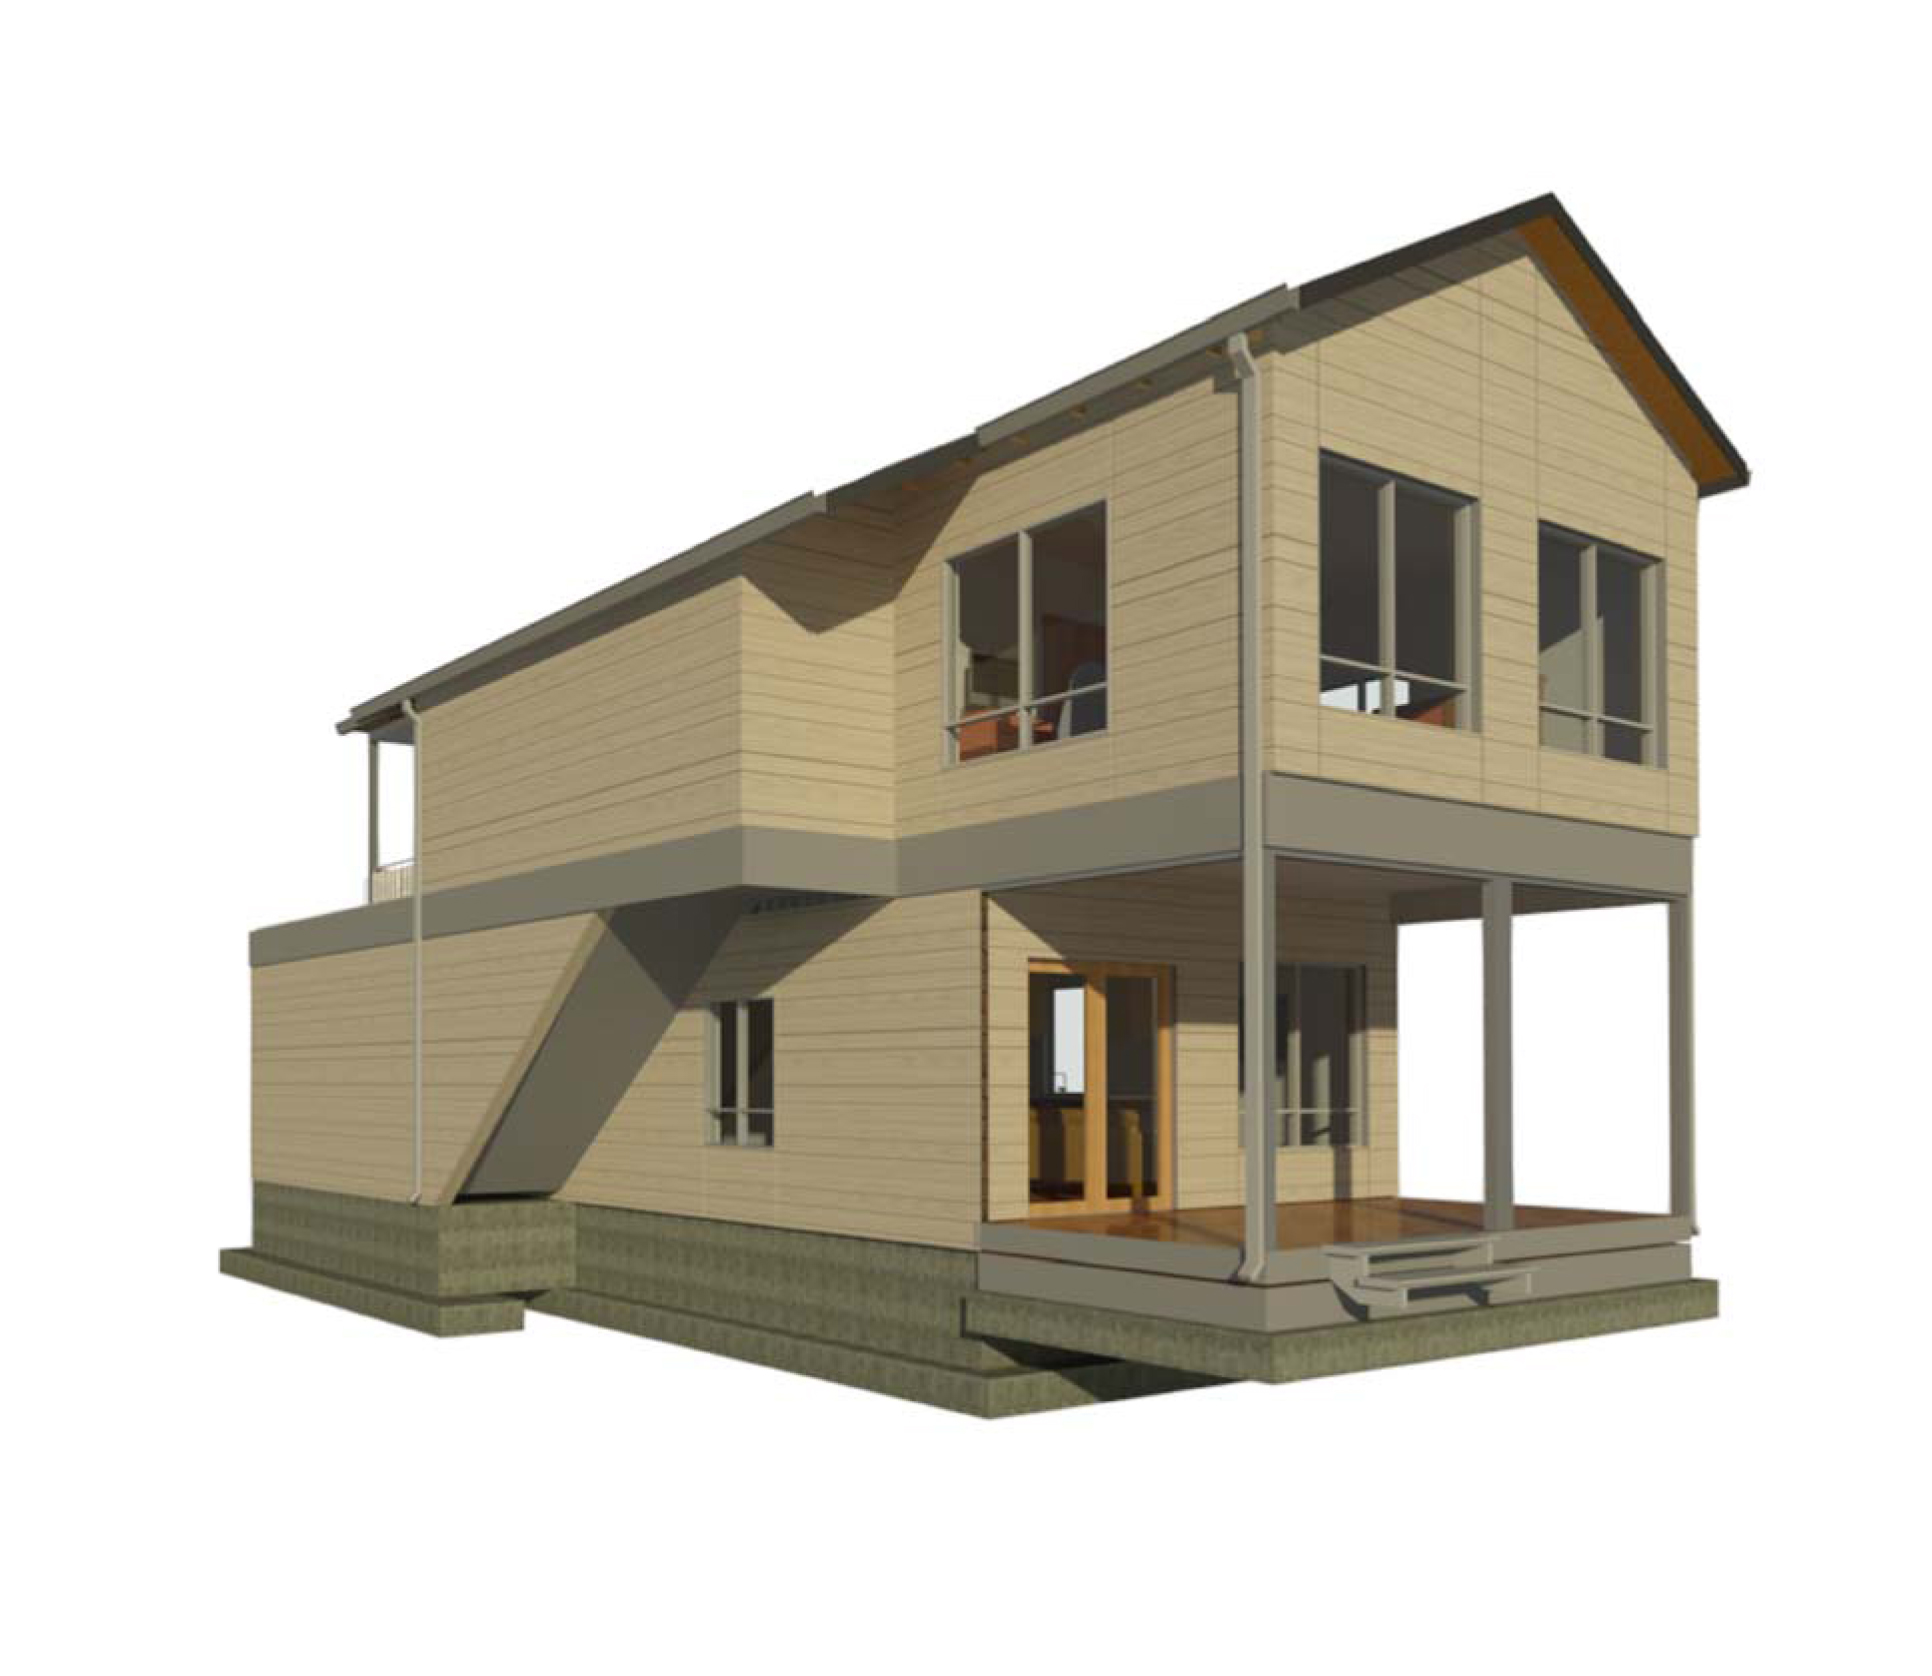 C:UserswilliajpDropboxShipping Container 2016 revit.pdf